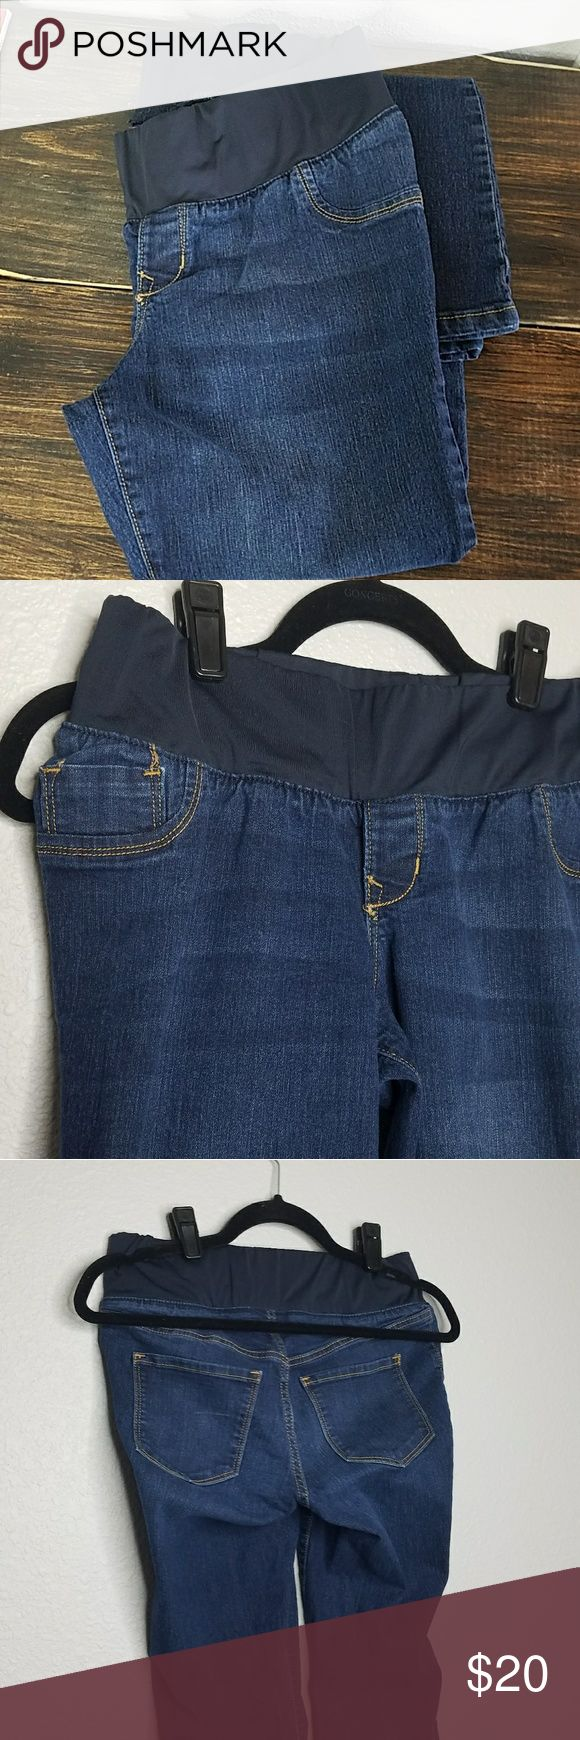 OLD NAVY Maternity Boot Cut Jeans Excellent condition dark wash low panel maternity jeans. Size 6. Old Navy Jeans